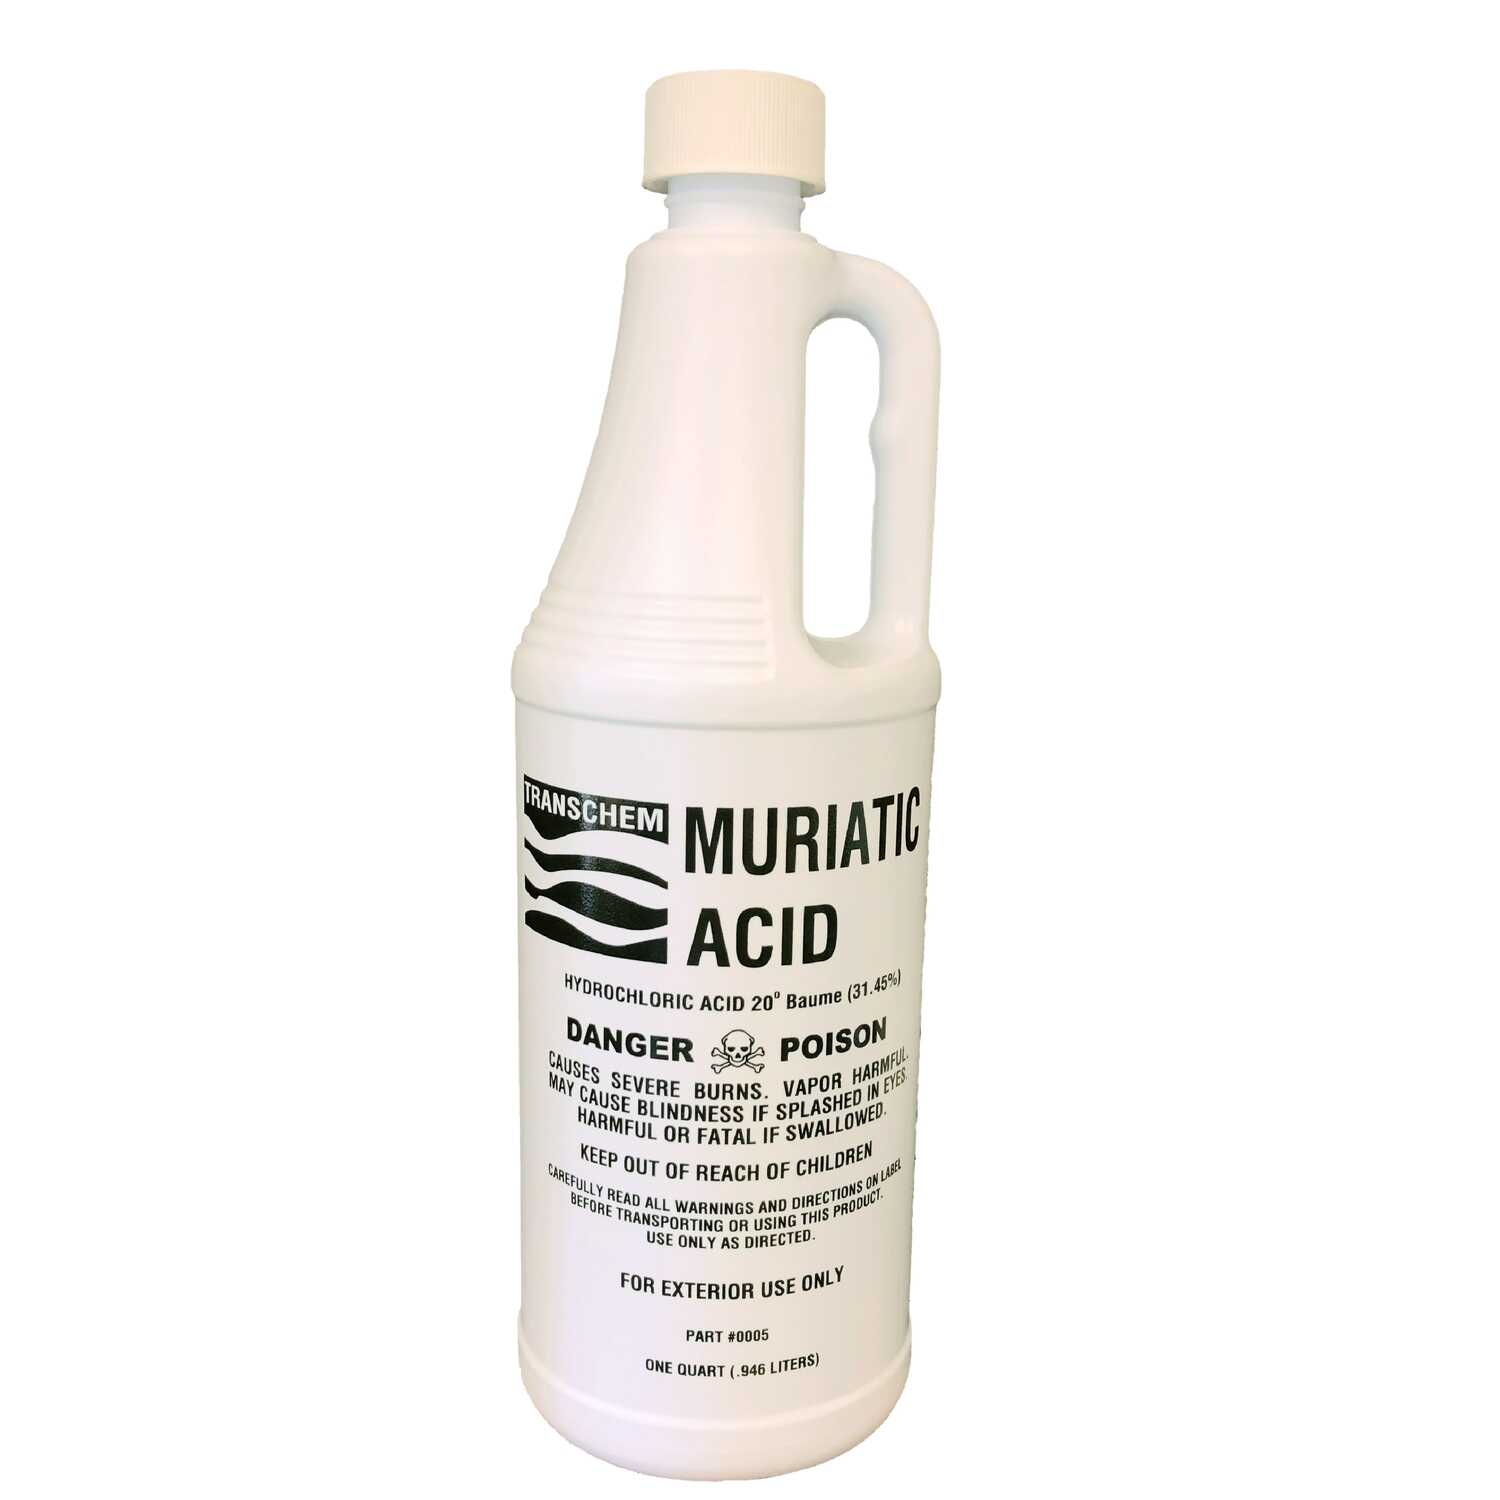 Transchem Muriatic Acid 1 Qt Liquid Ace Hardware